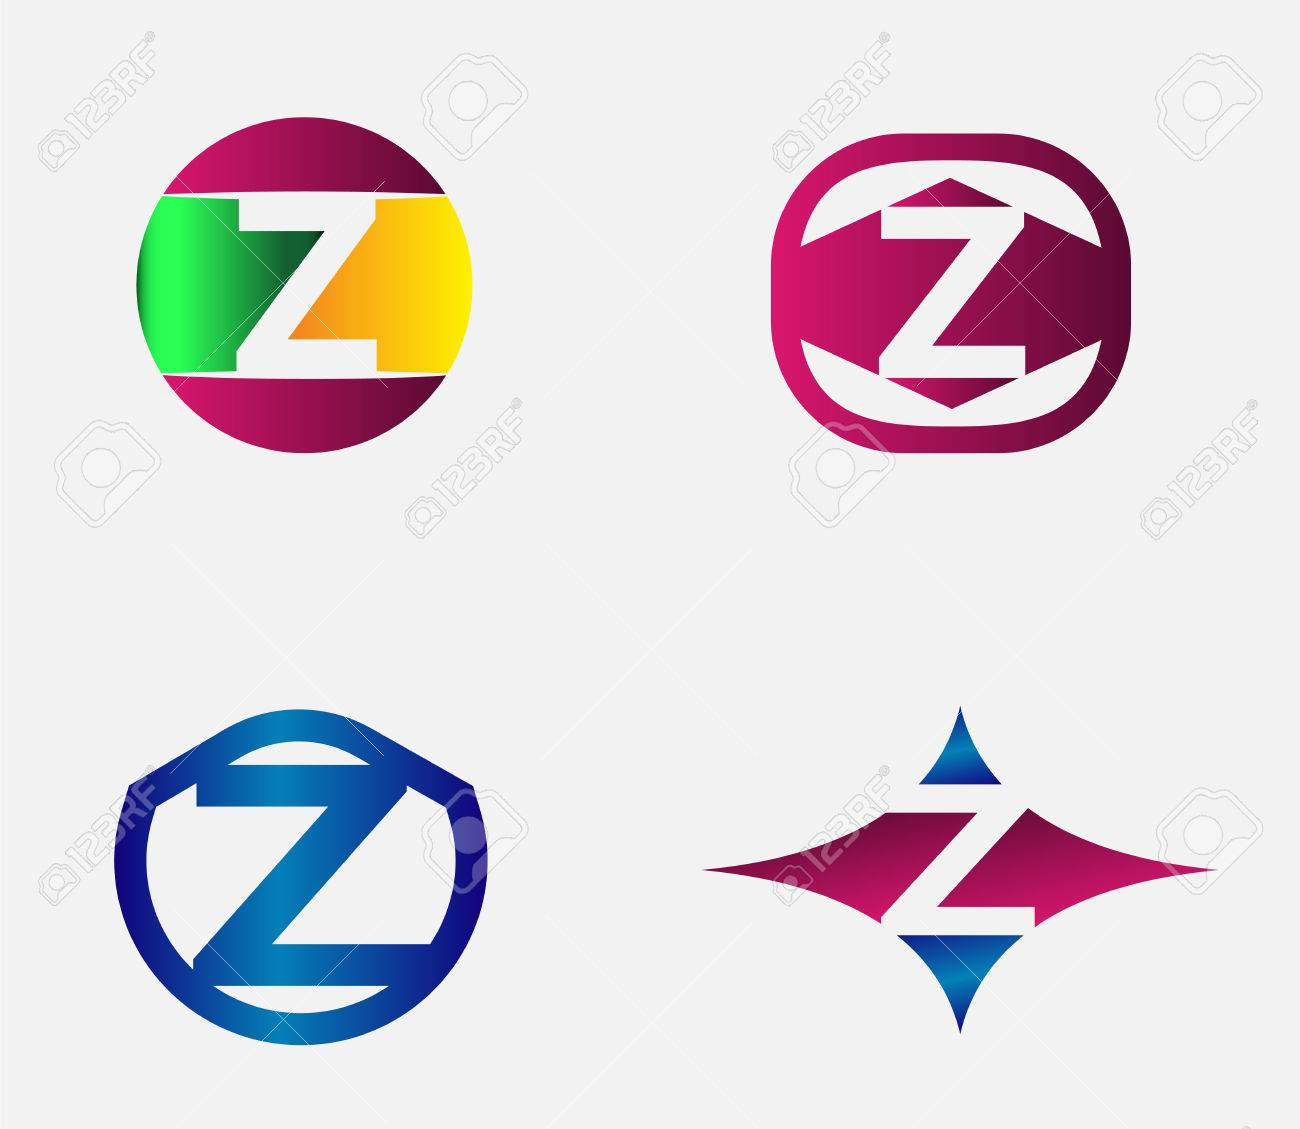 letter z alphabet vector logo design template element royalty free